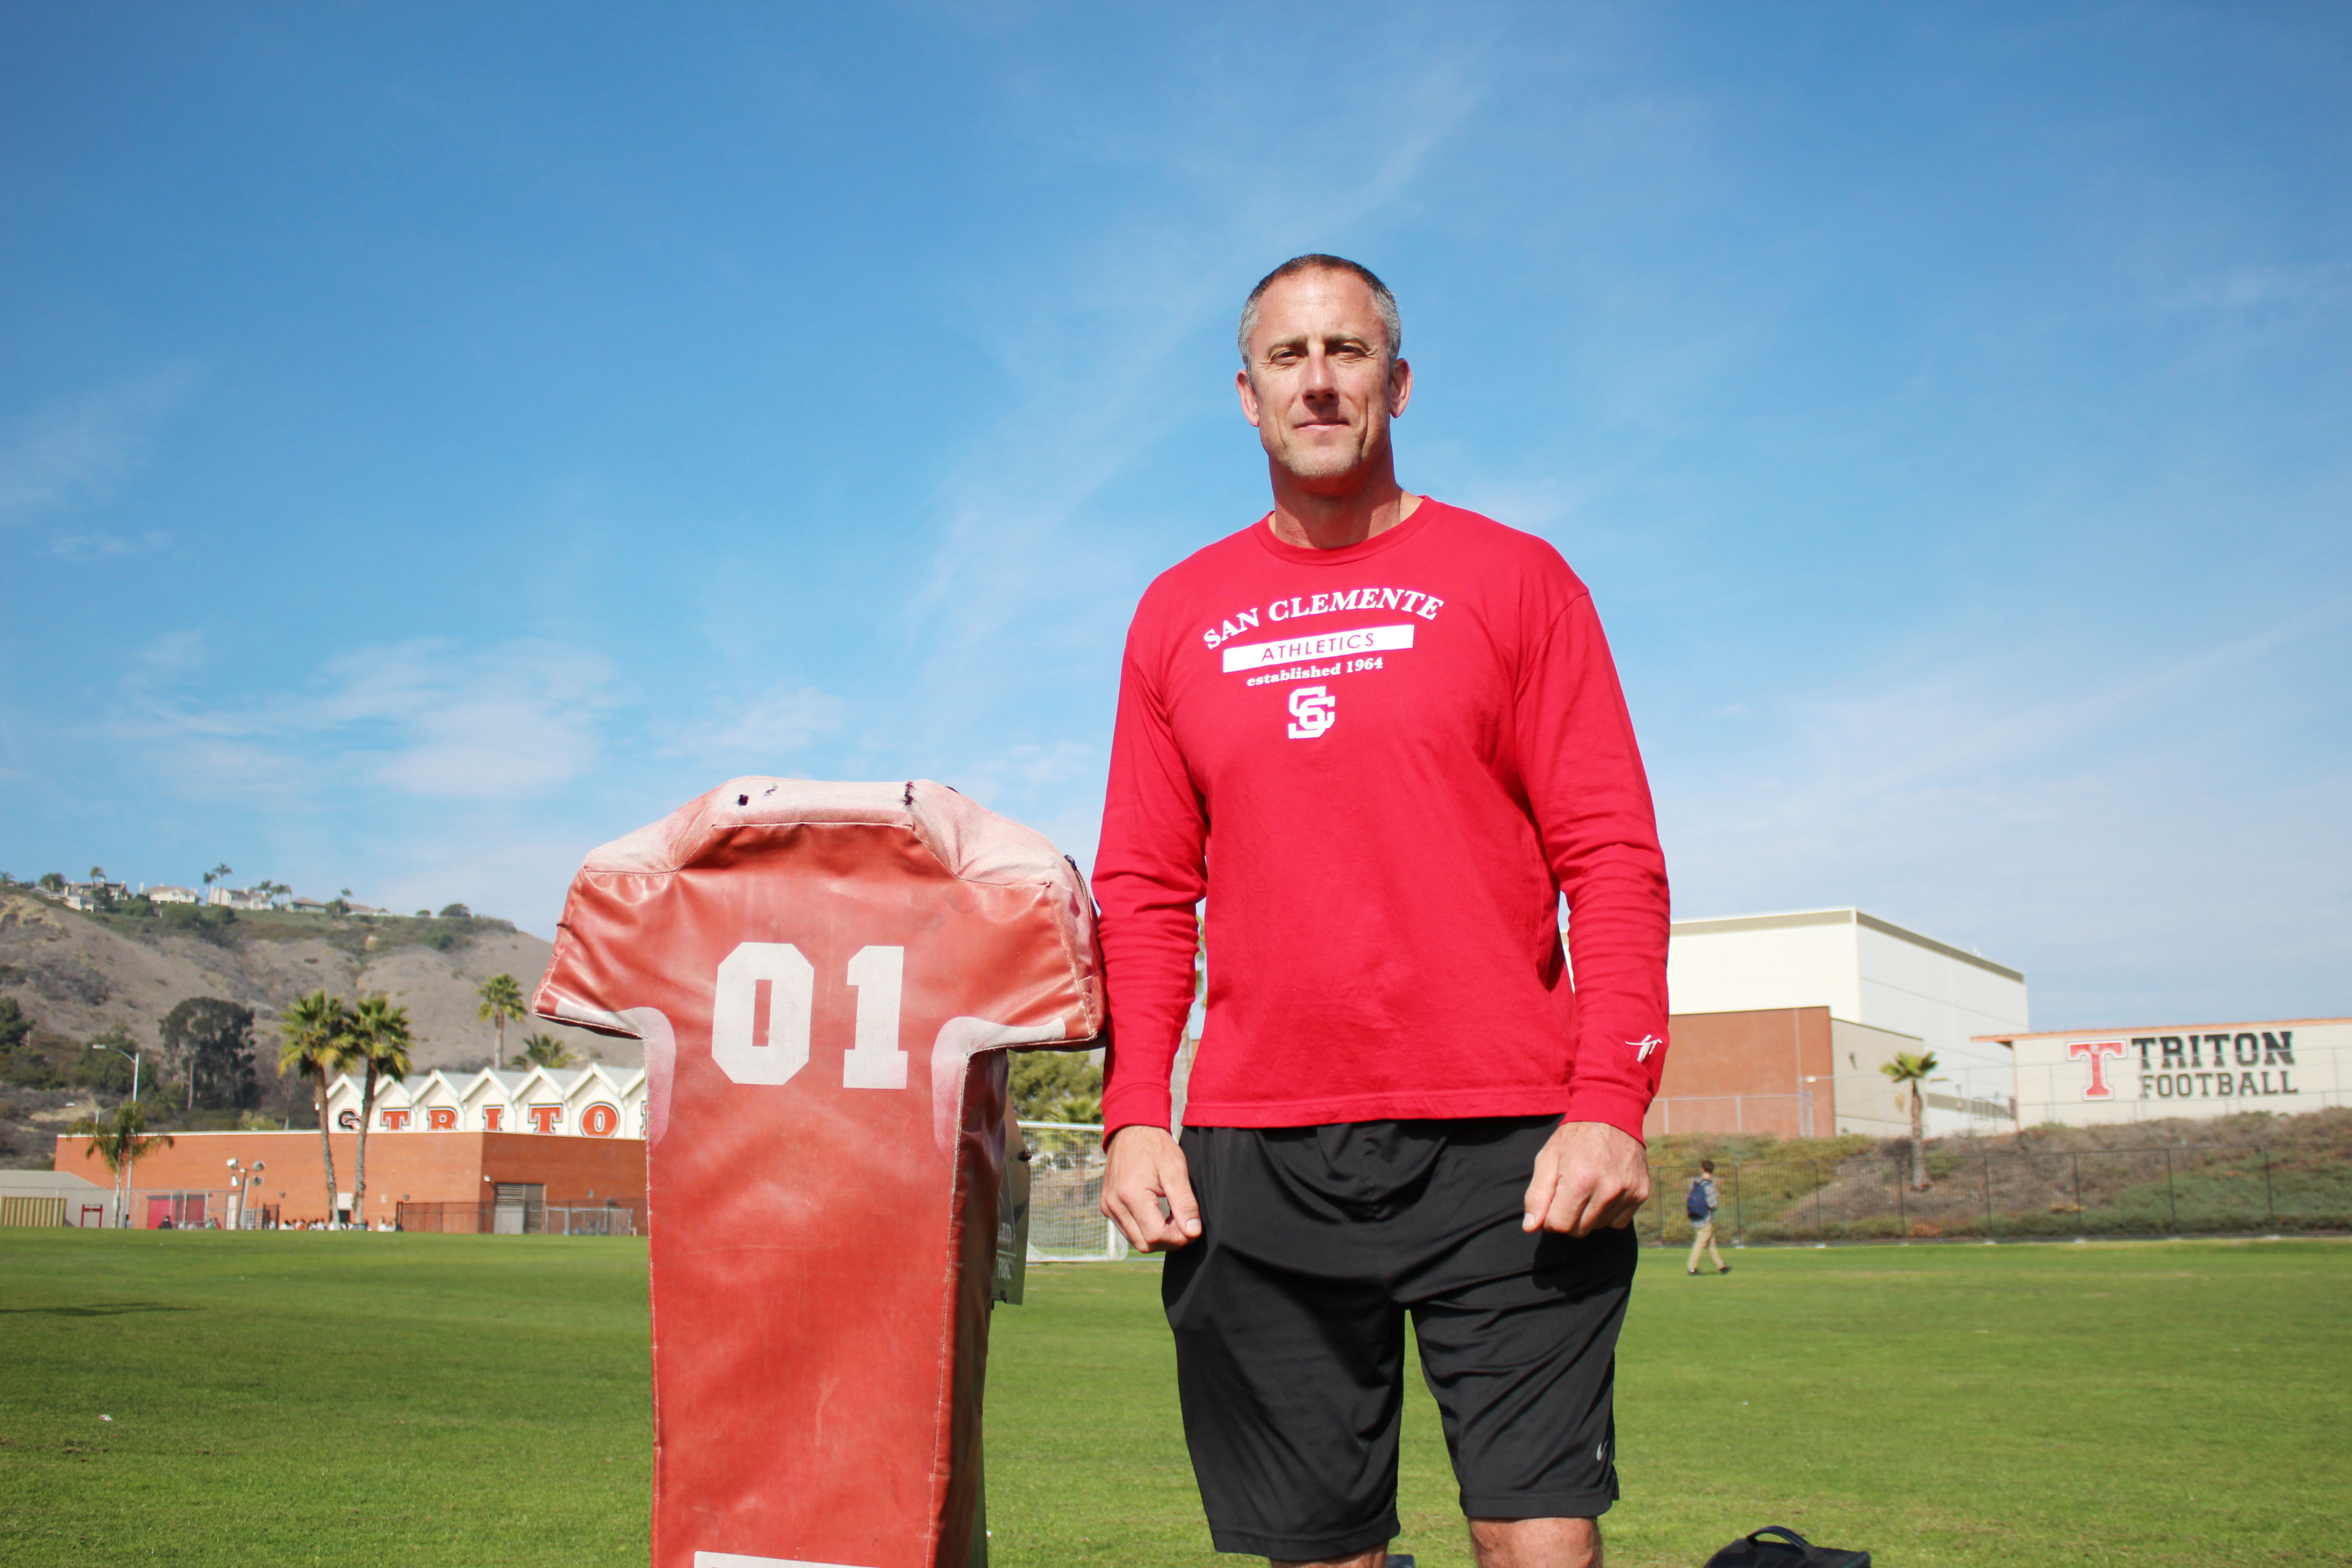 Pat Harlow, pictured, and colleague Lance Scott's Red Zone Elite training camp focuses on developing offensive and defensive linemen. Photo by Steve Breazeale